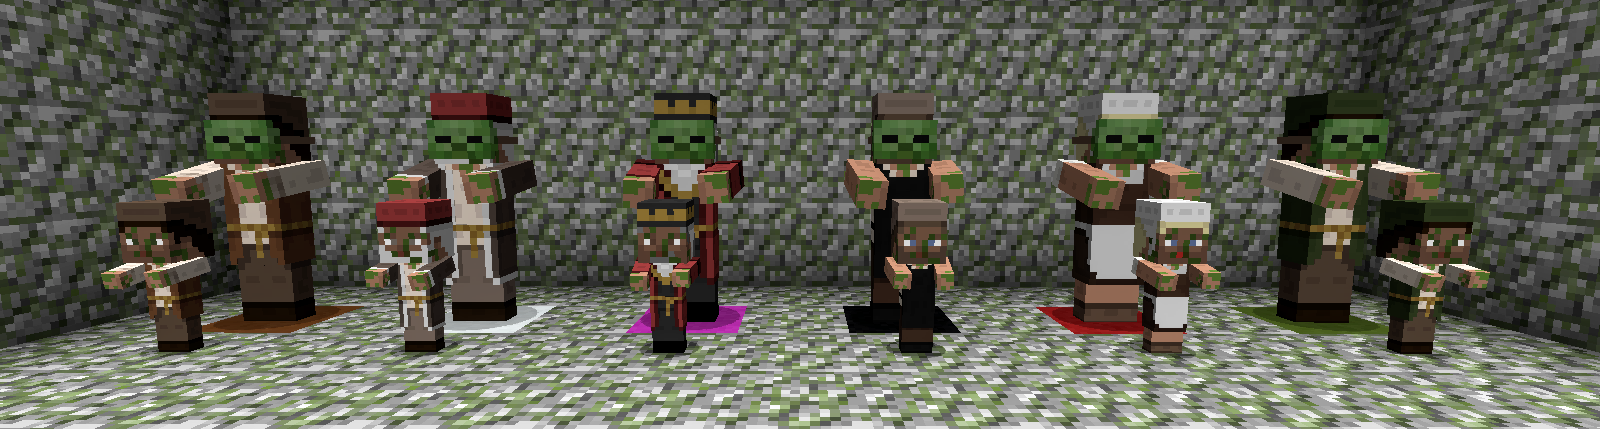 Zombie Villagers